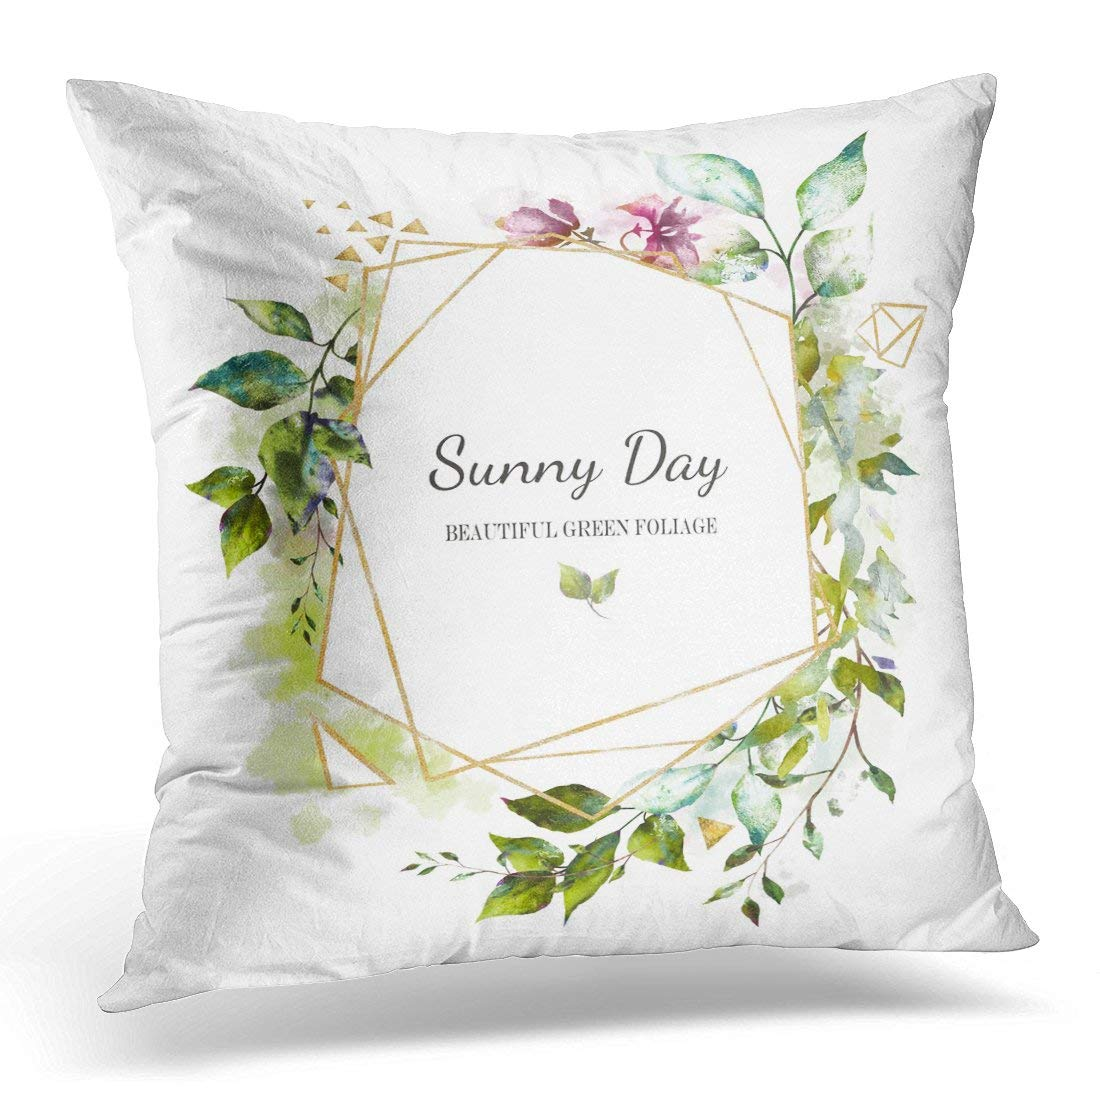 USART White Floral Watercolor Design with Leaves Wild Flowers with Botanic for Text Geometrical Gold Pillow Case Pillow Cover 20x20 inch